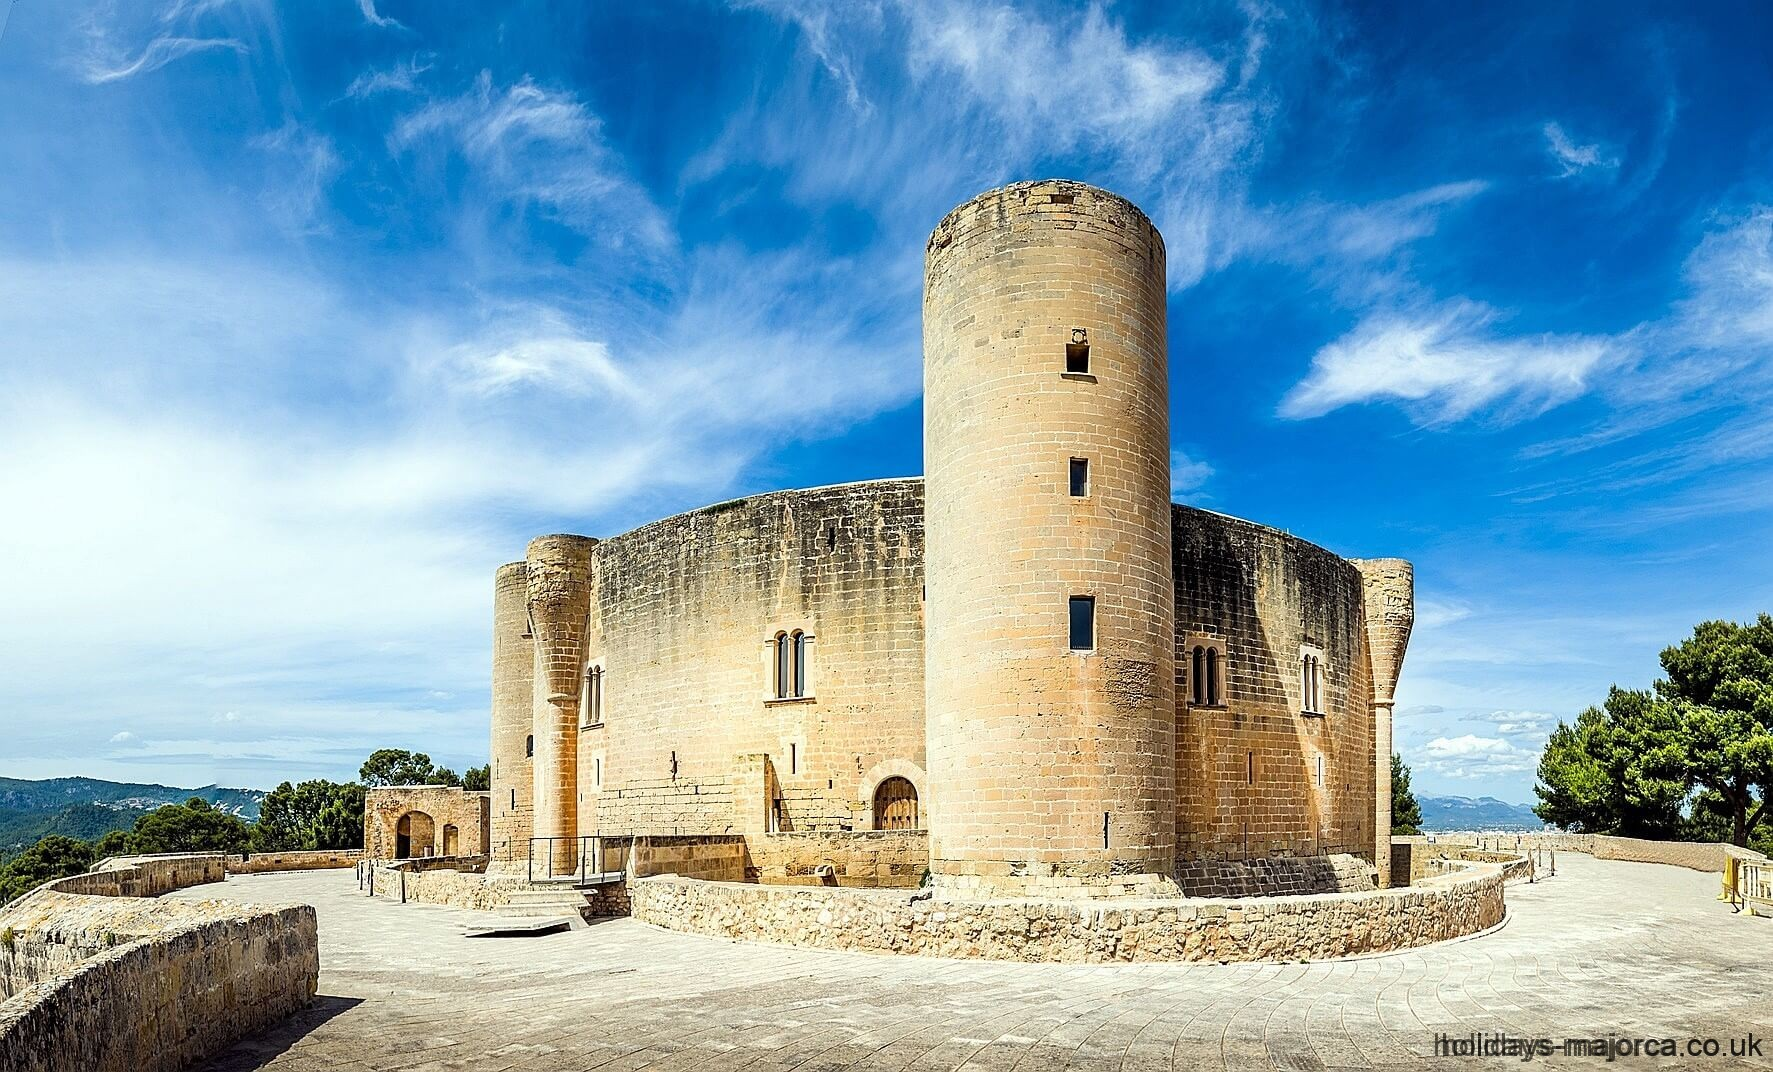 A guide to Bellver Castle Palma de Majorca